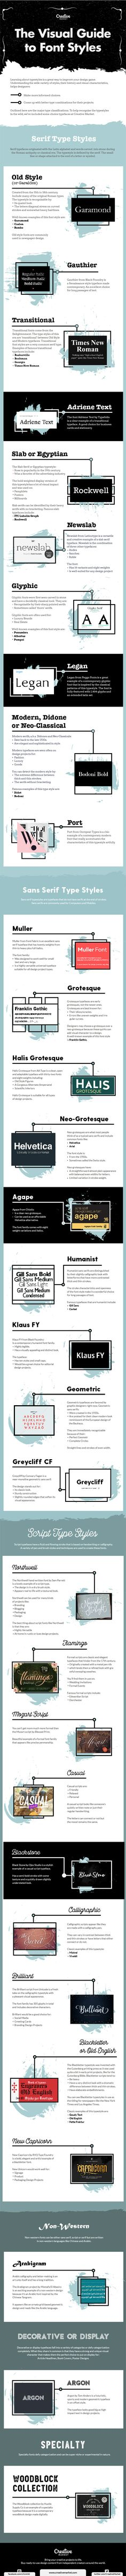 The Visual Guide to Font Styles ~ Creative Market Blog